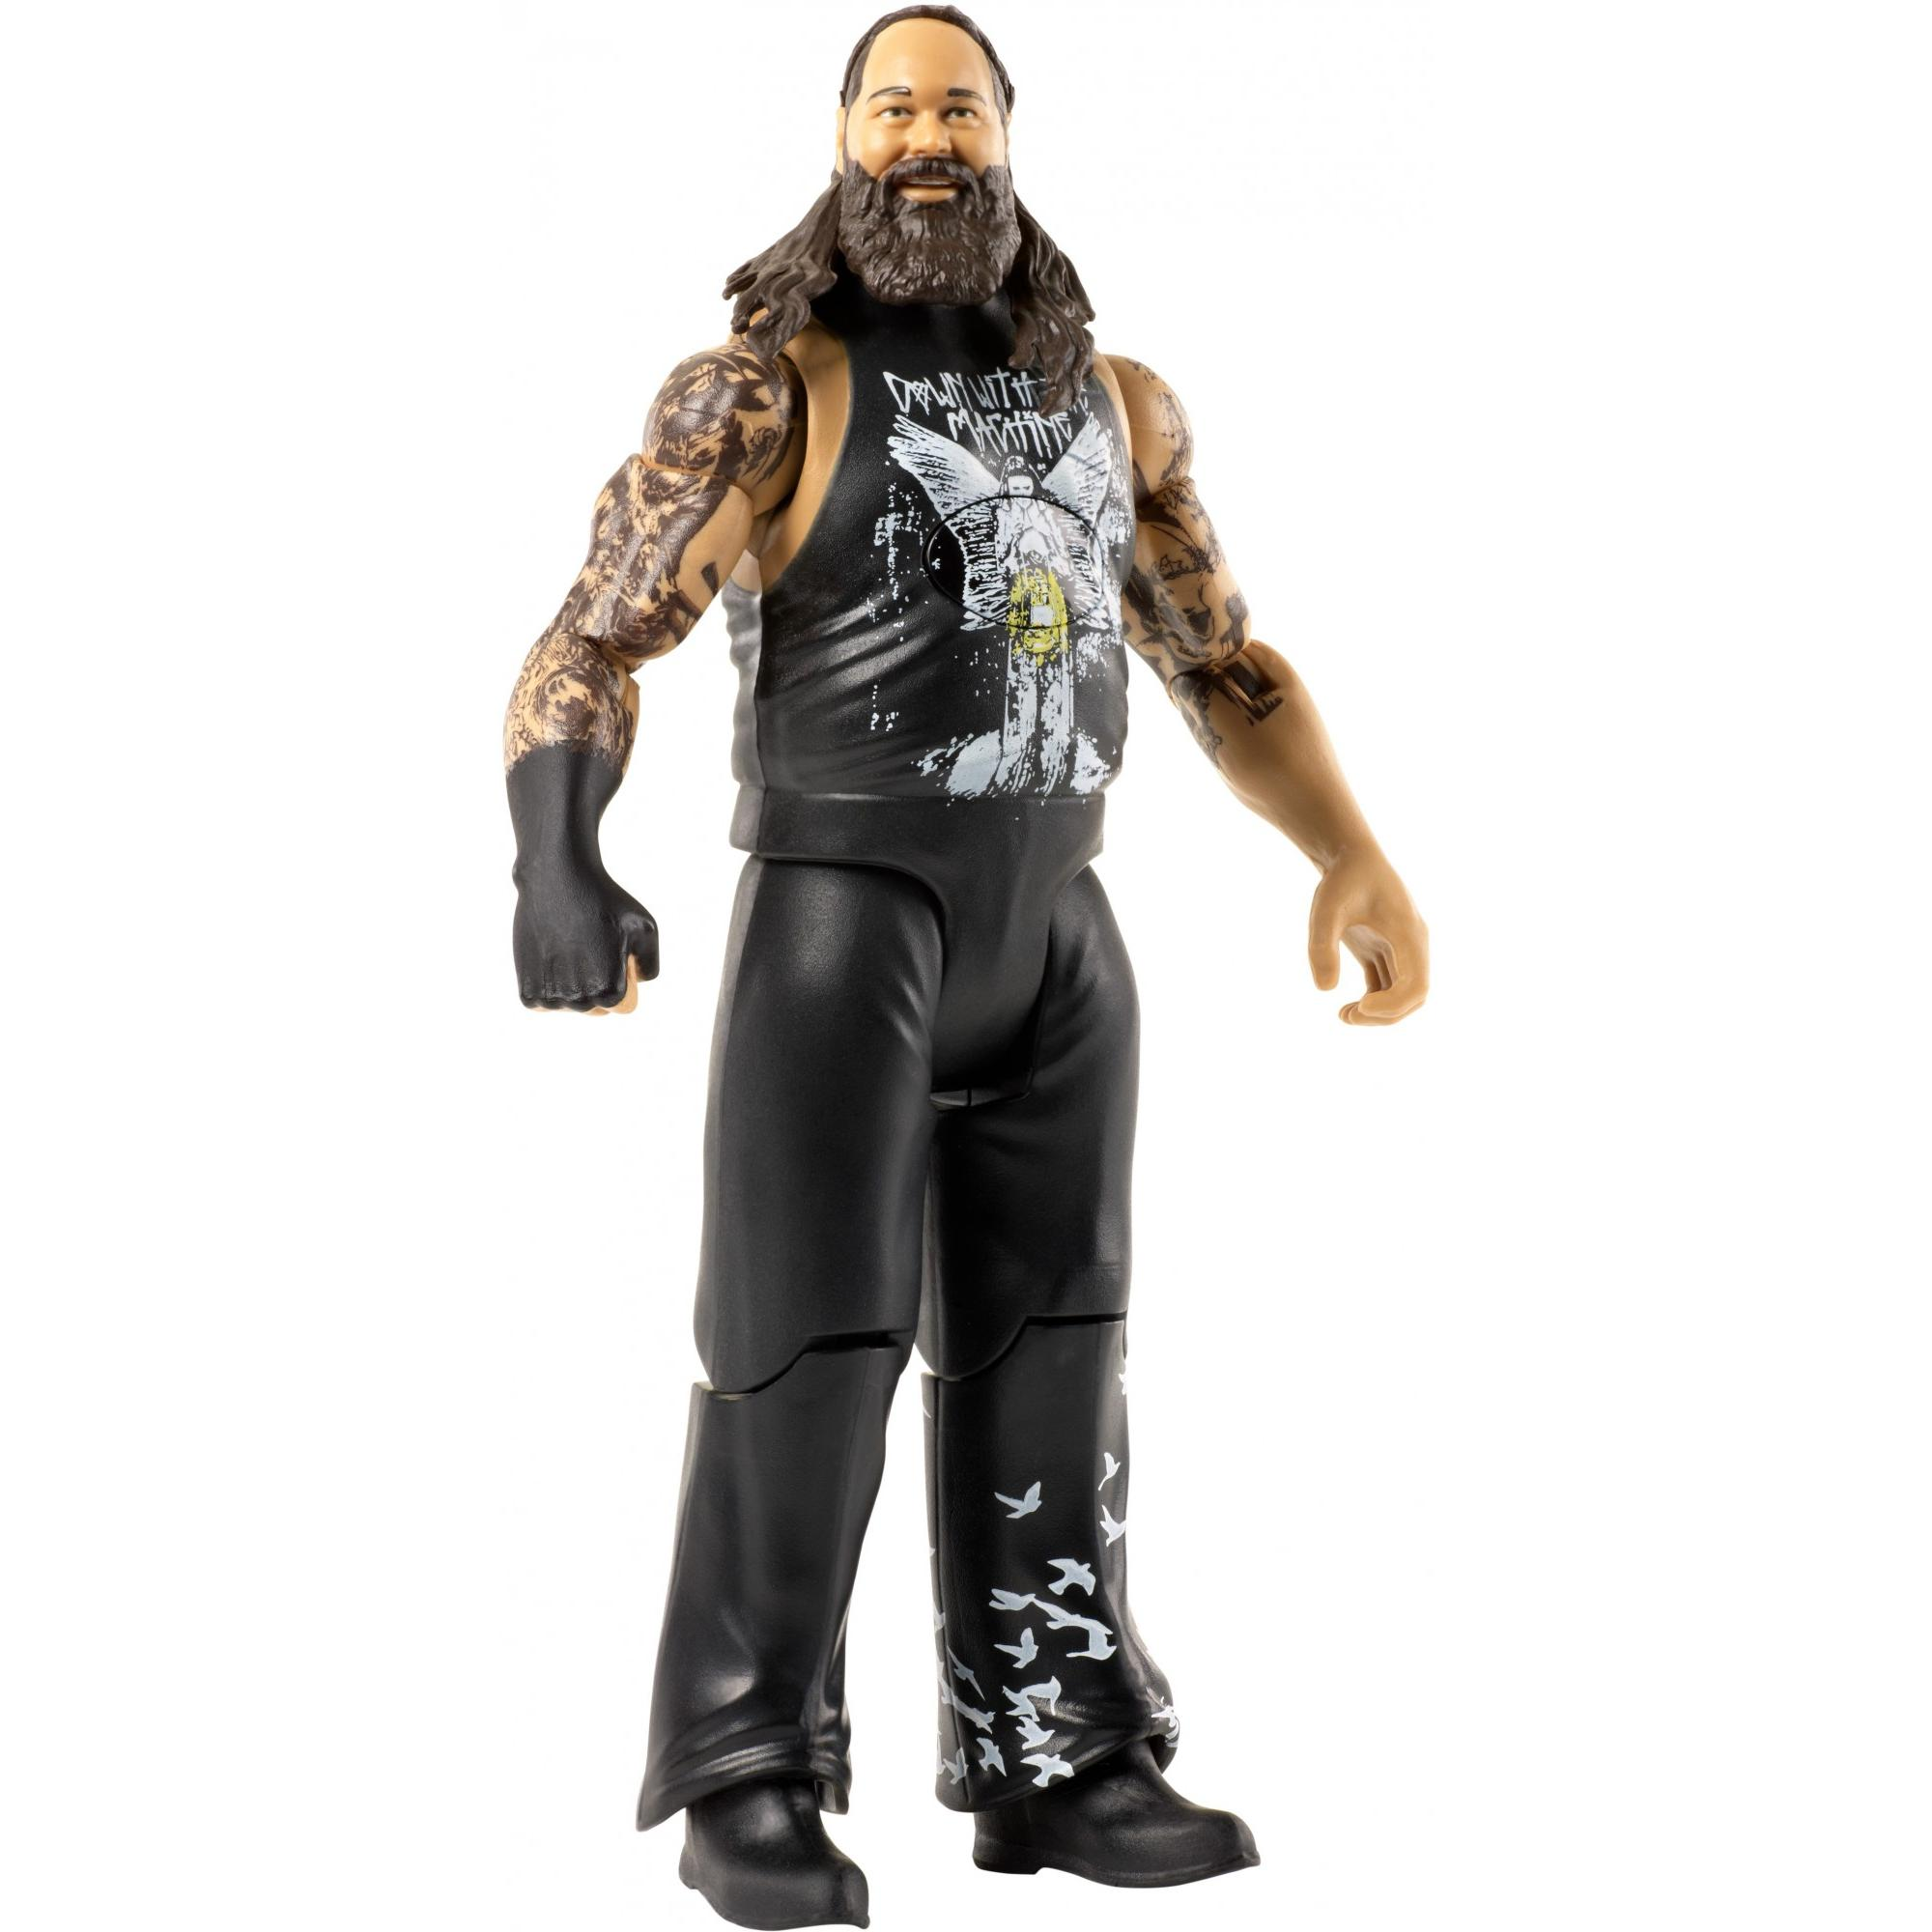 WWE Tough Talkers Bray Wyatt Figure